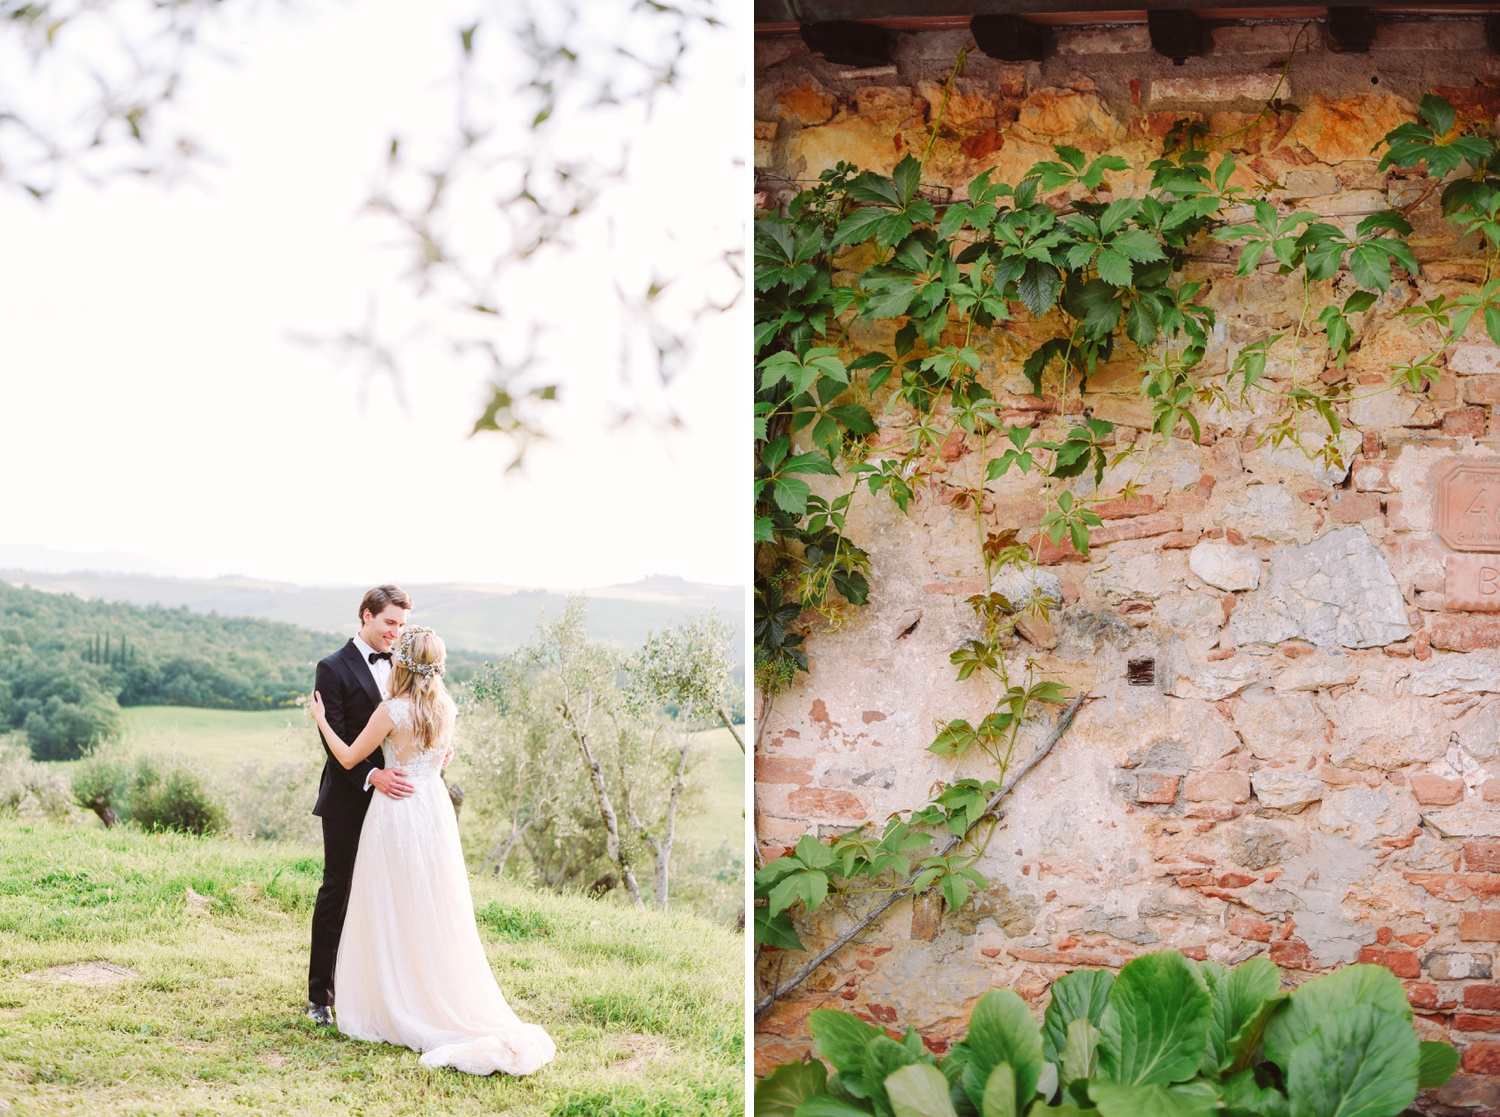 landvphotography_wedding_photographer_tuscany_0074.jpg